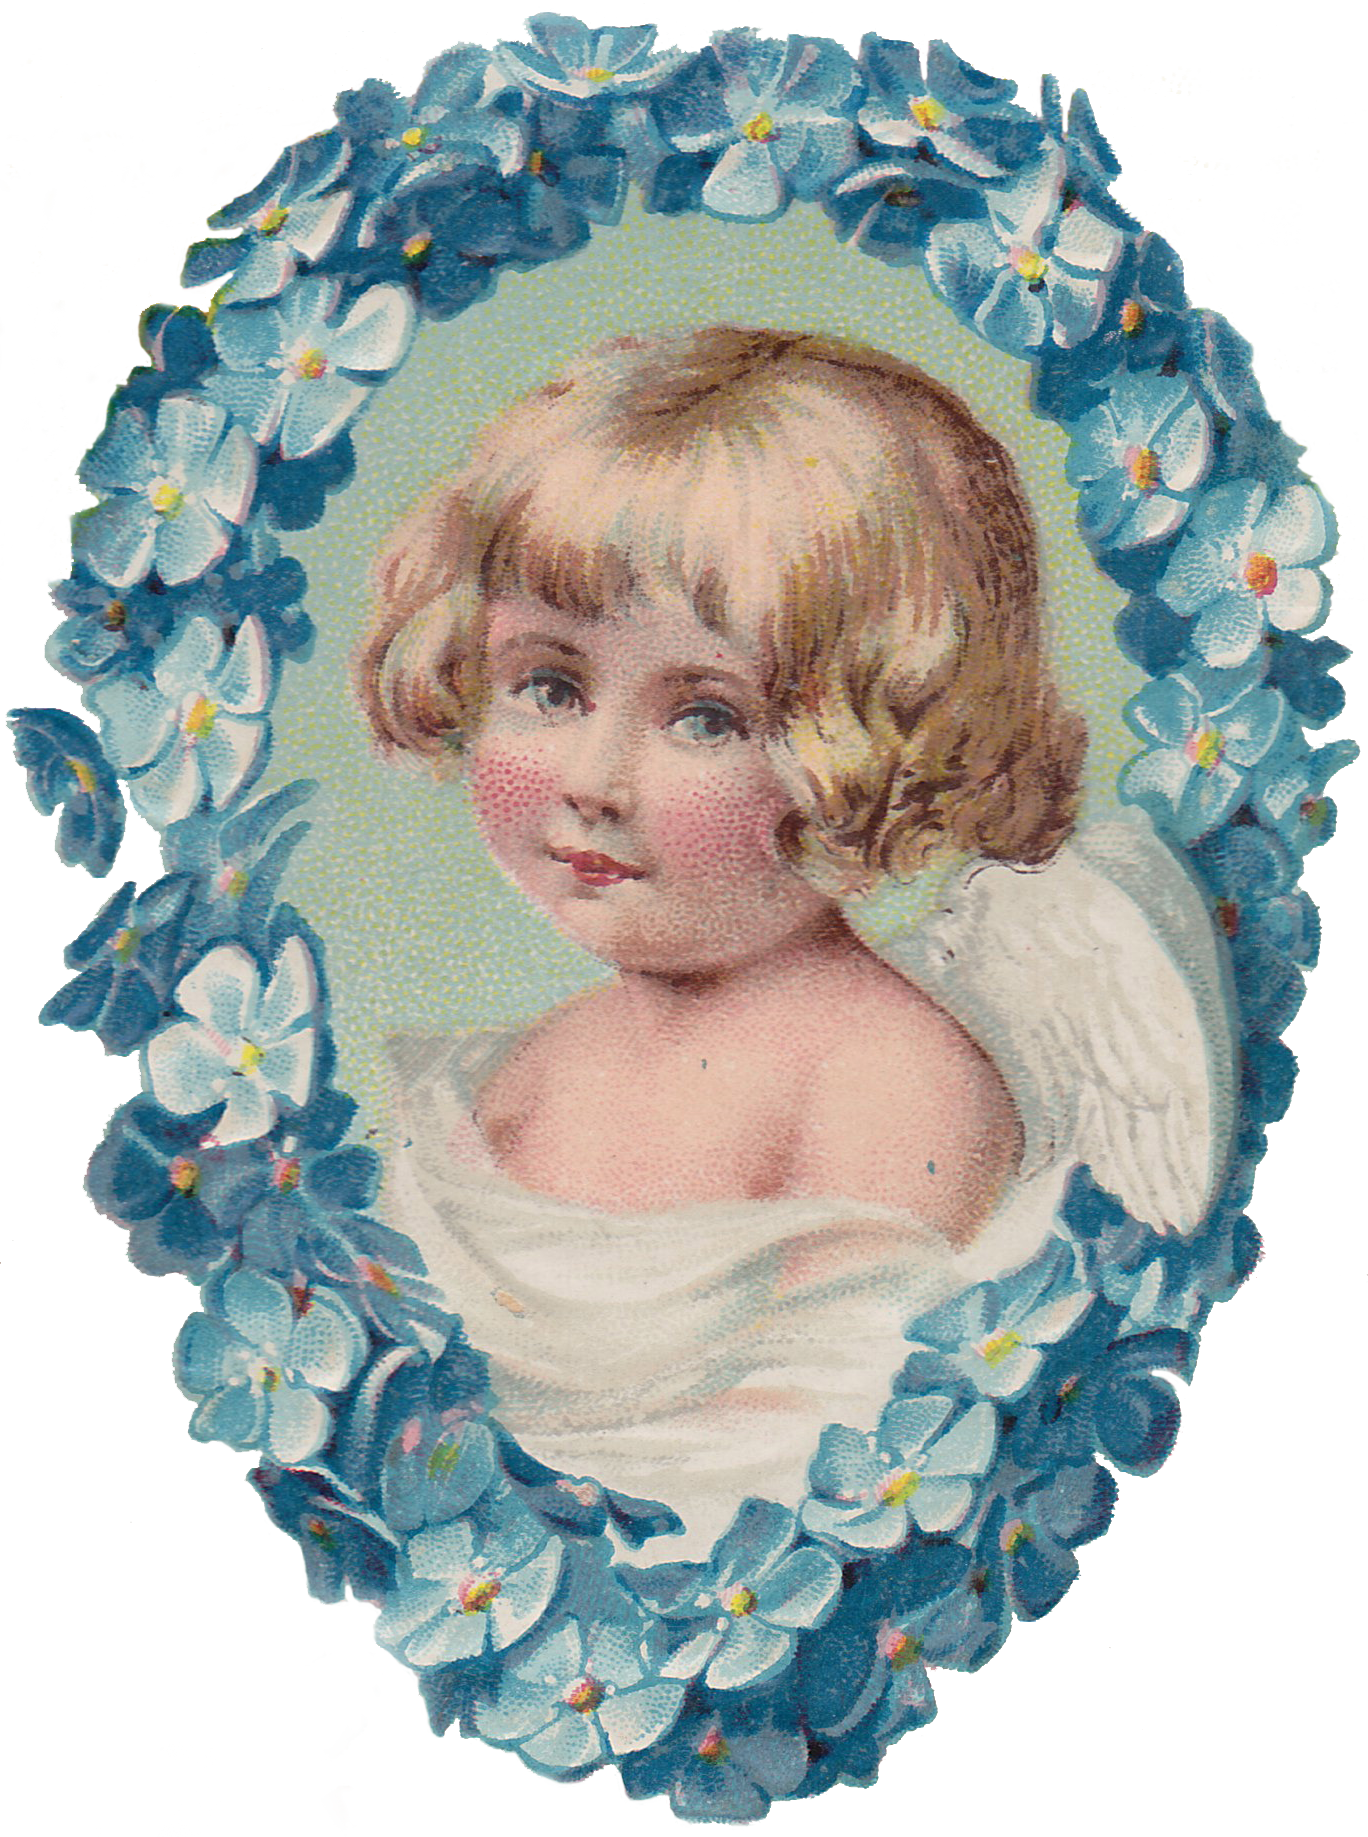 Wings of Whimsy: Blue Cherub Portrait - png file (transparent background) free for personal use #vintage #edwardian #victorian